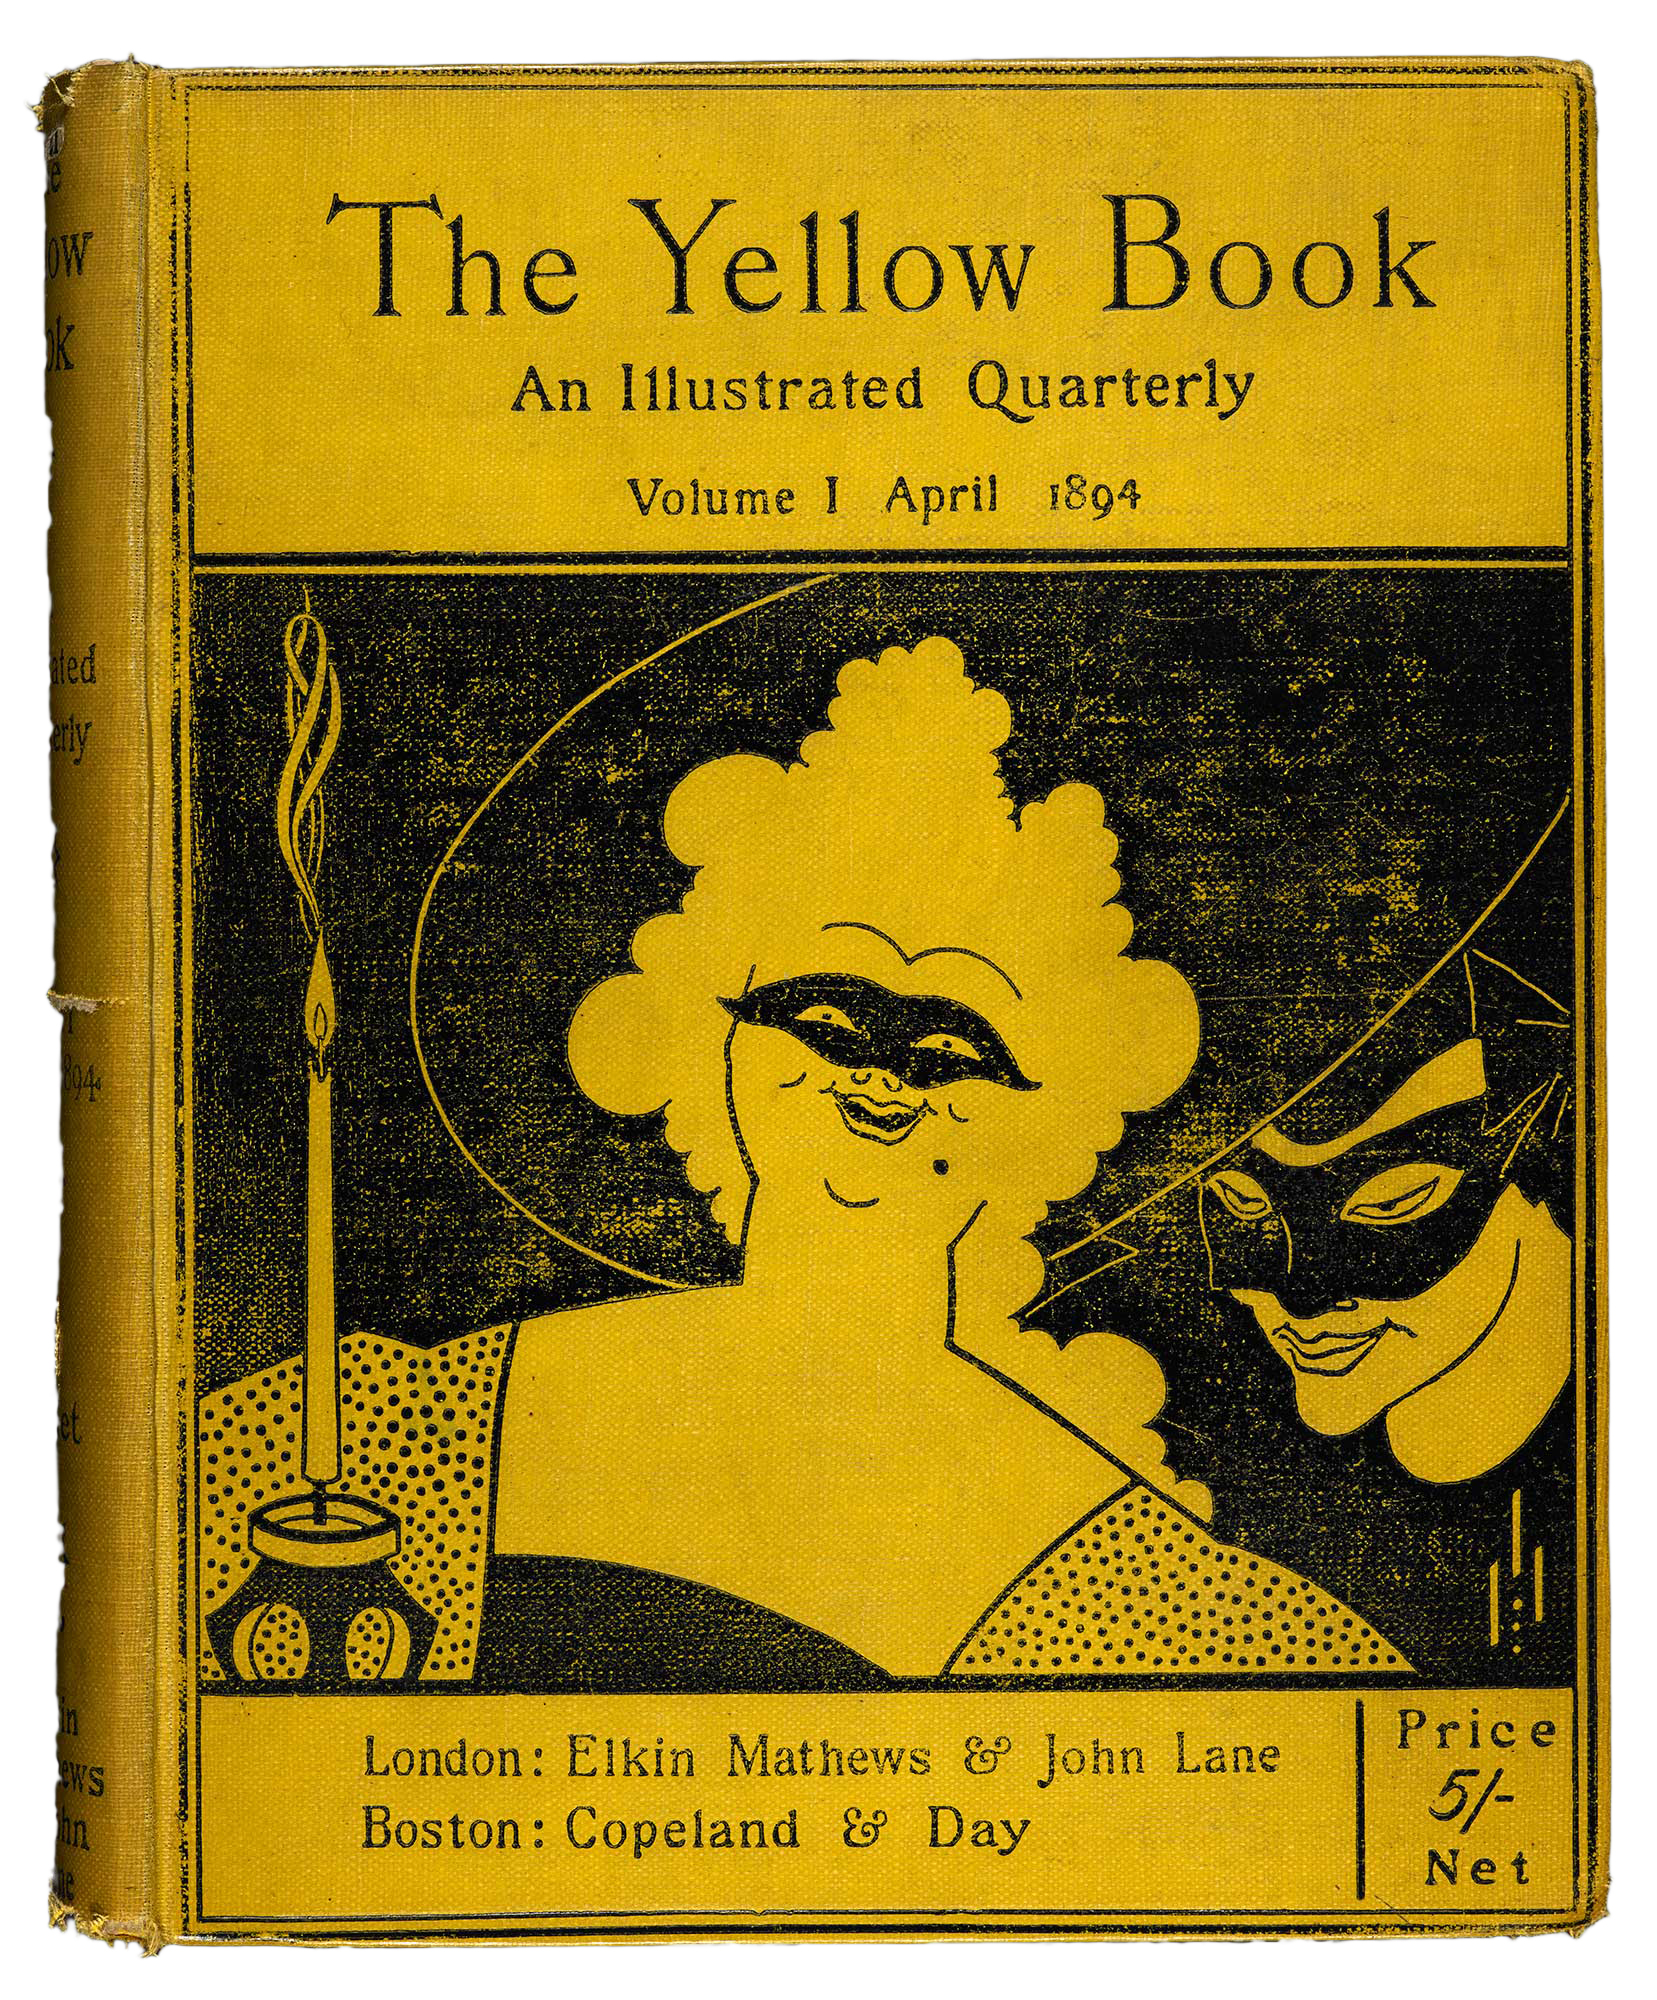 https://s3-us-west-2.amazonaws.com/secure.notion-static.com/a4f96f3d-6a63-404b-8e32-8572f6f20f68/1894-The-Yellow-Book-Vol.jpg